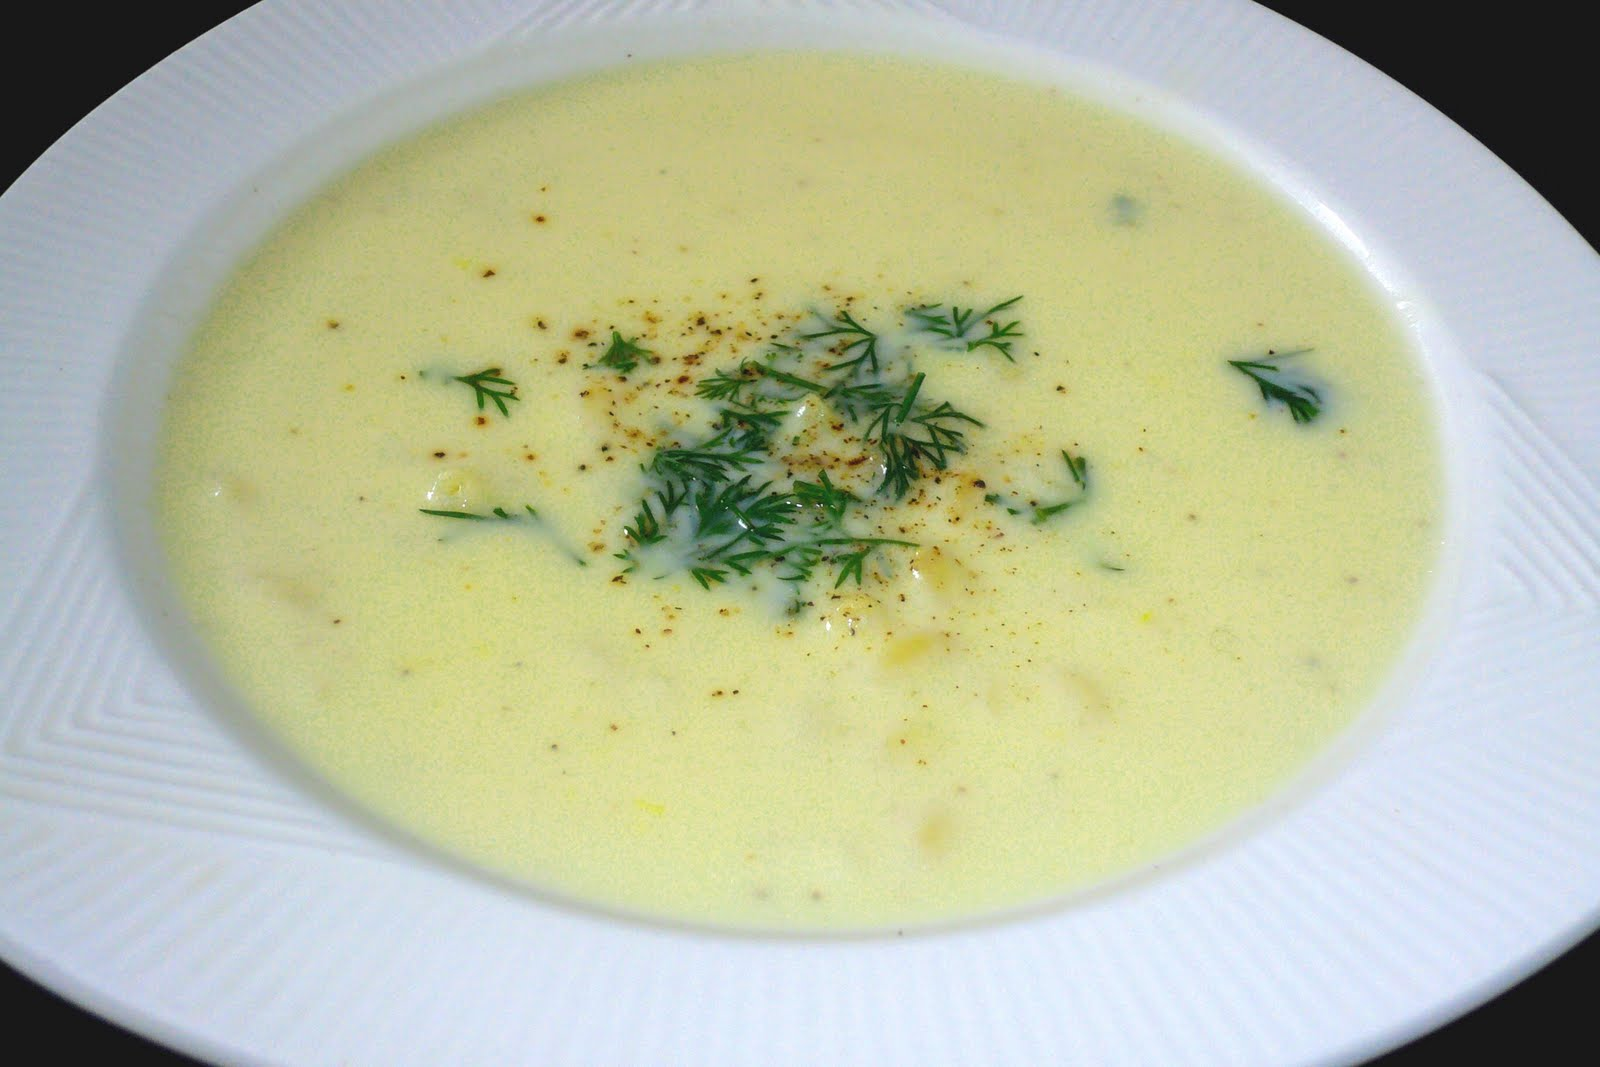 ... greek lemon thyme potatoes egg lemon and rice soup avgolemono soupa